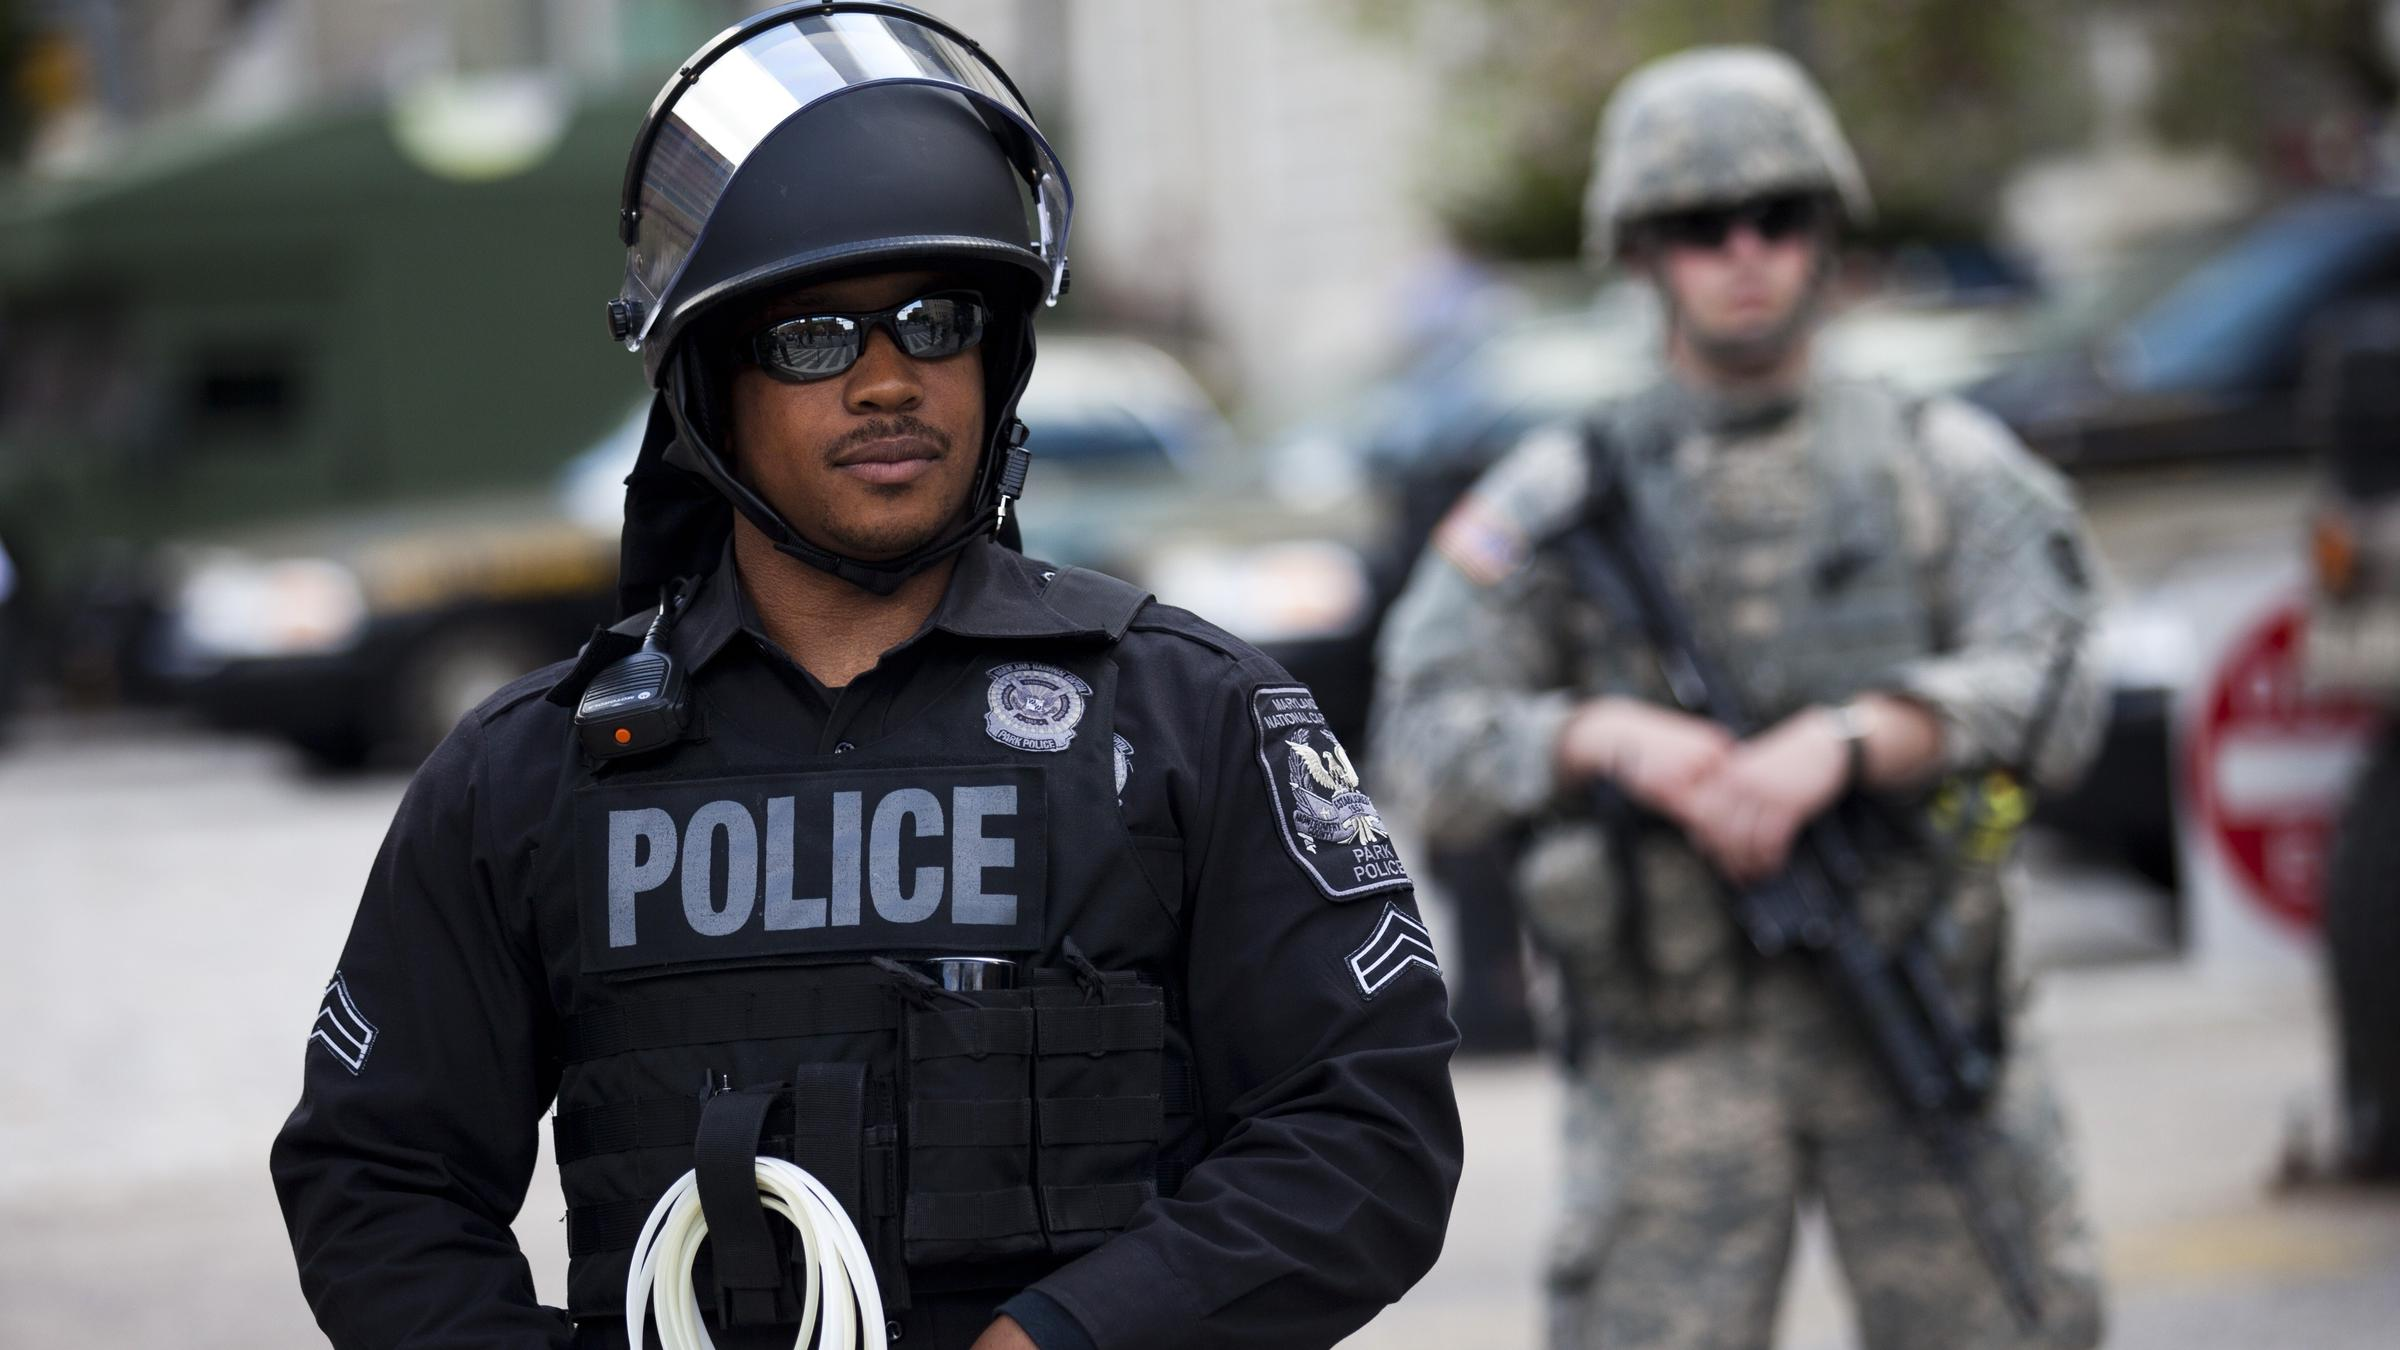 us policeman A police officer is a serving member of a police force police officers arrest criminals, prevent crime , protect and help the public, and keep public order officers have legally authorised.